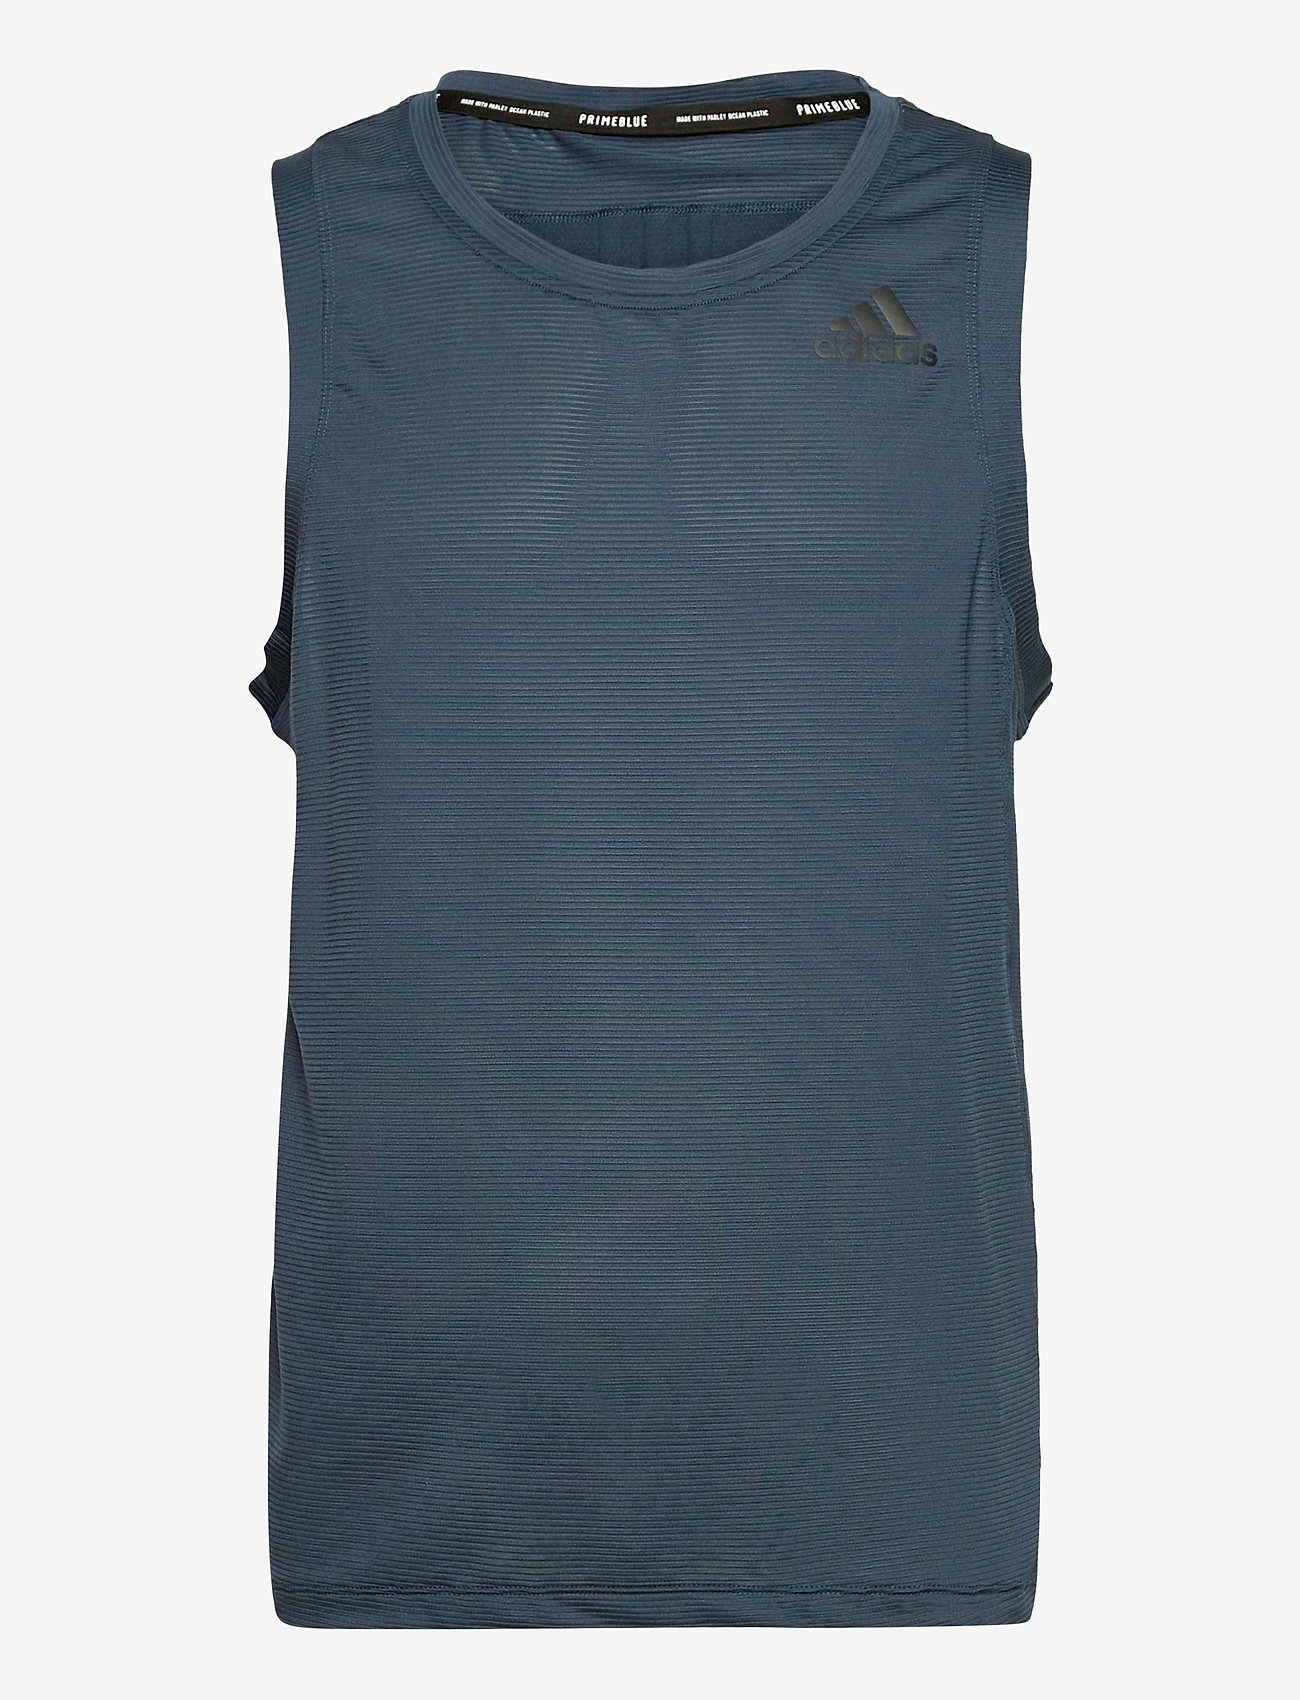 adidas Performance - AEROREADY 3-Stripes Primeblue Tank Top - tank tops - crenav - 1